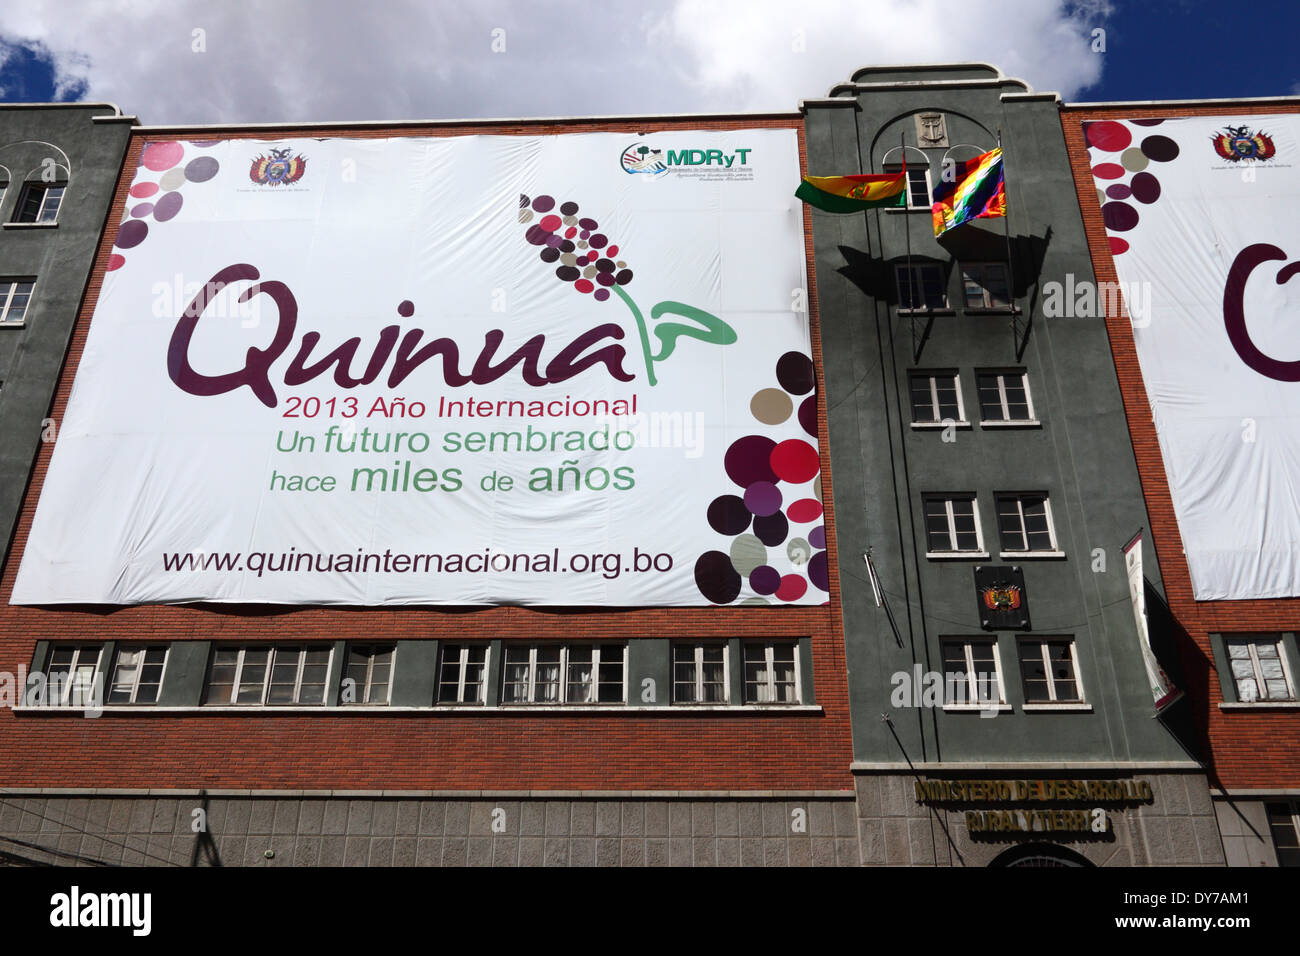 Banner promoting 2013 as International Year of Quinua on Rural Development and Land Ministry building, La Paz, Bolivia - Stock Image